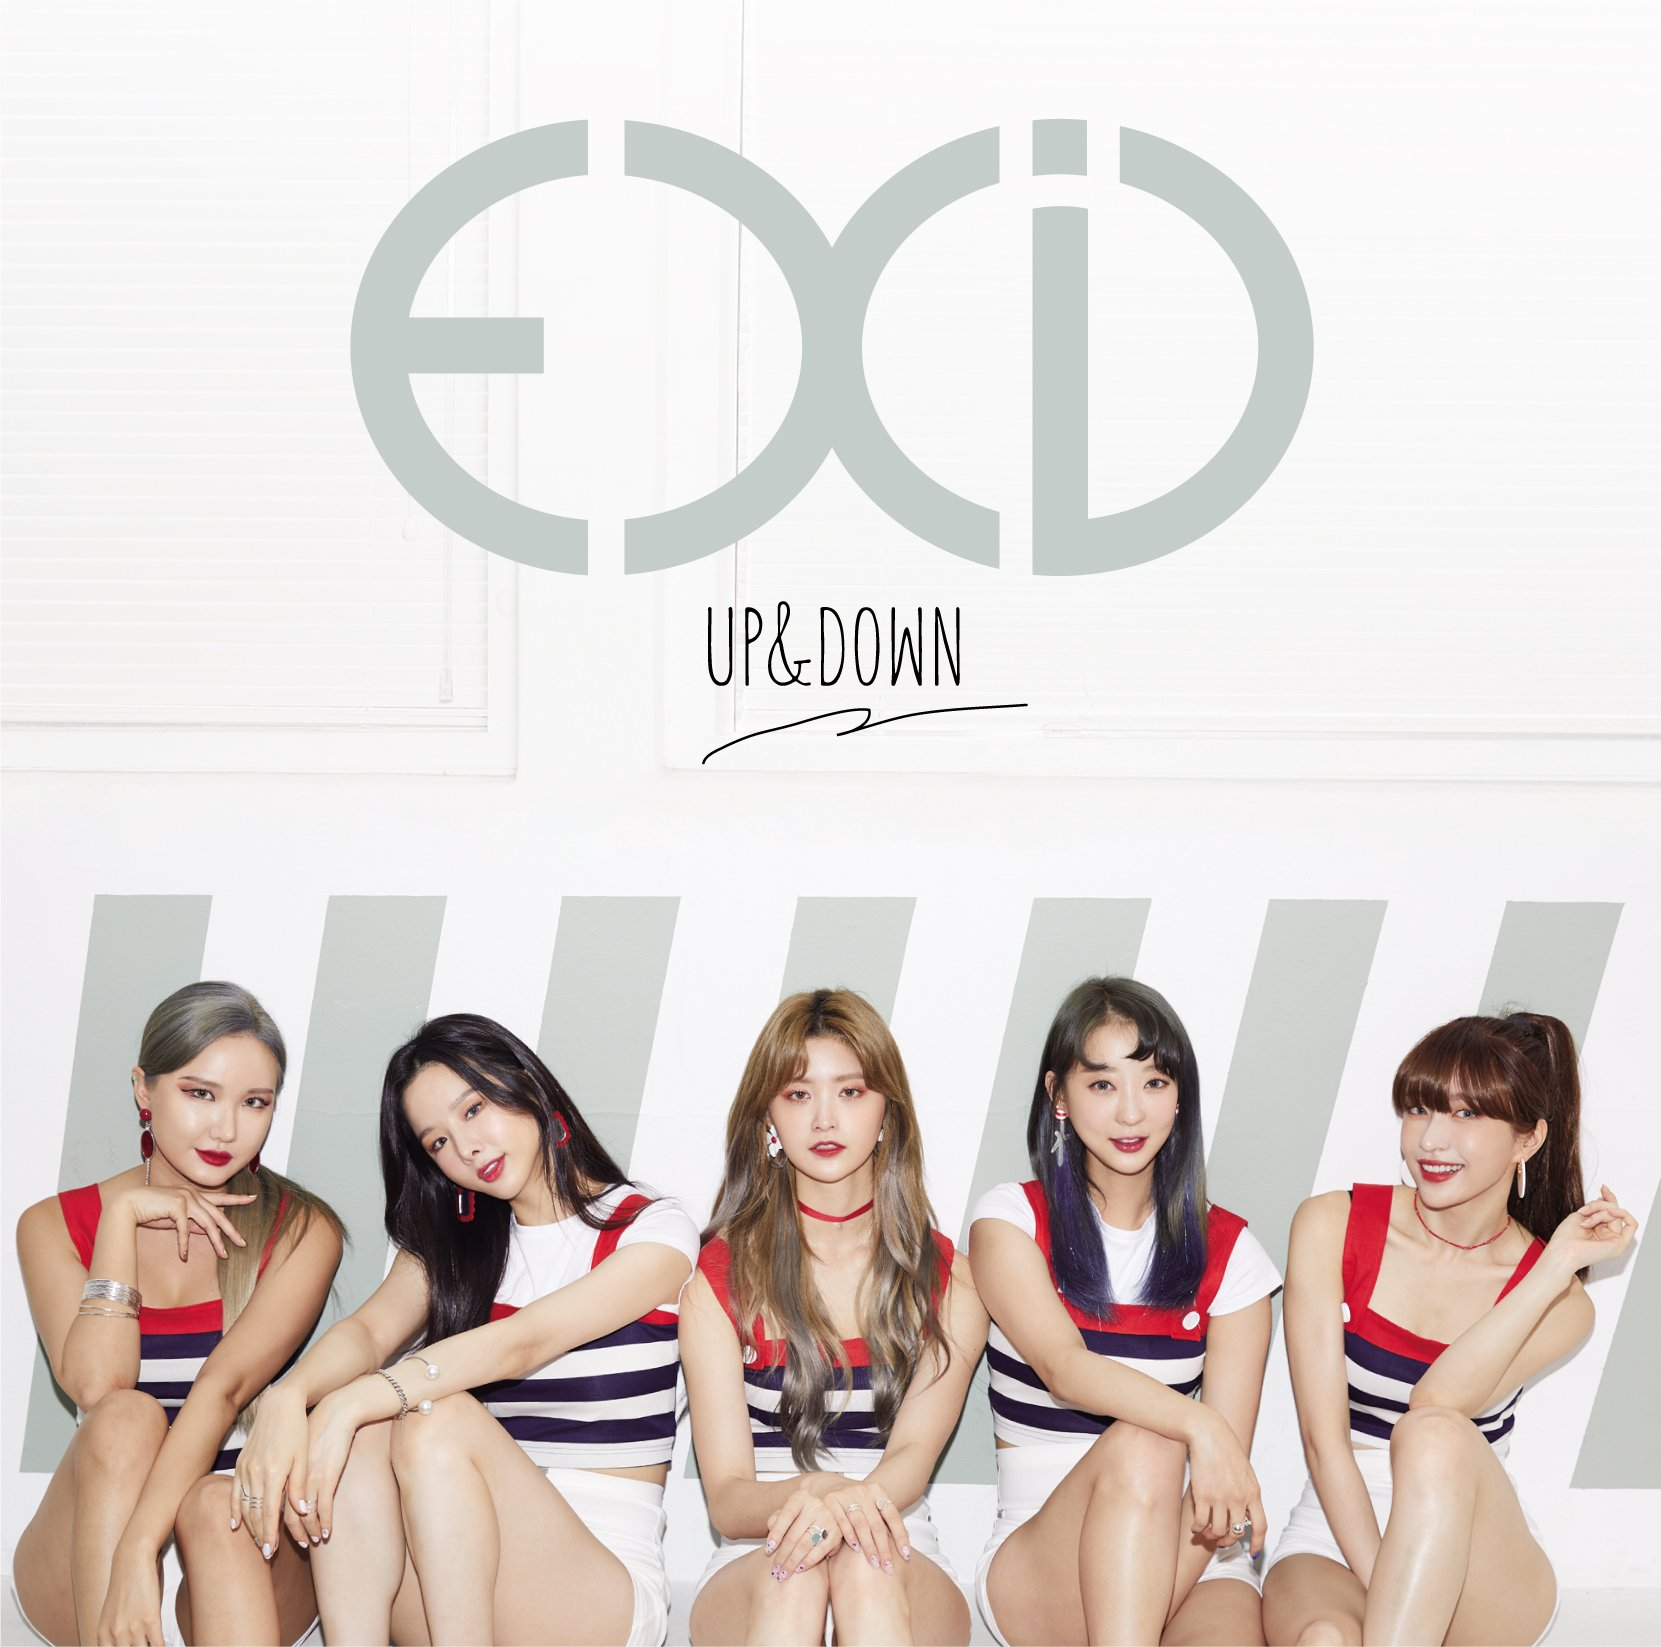 CD : Exid - Up&down (japanese Version) (Japan - Import)